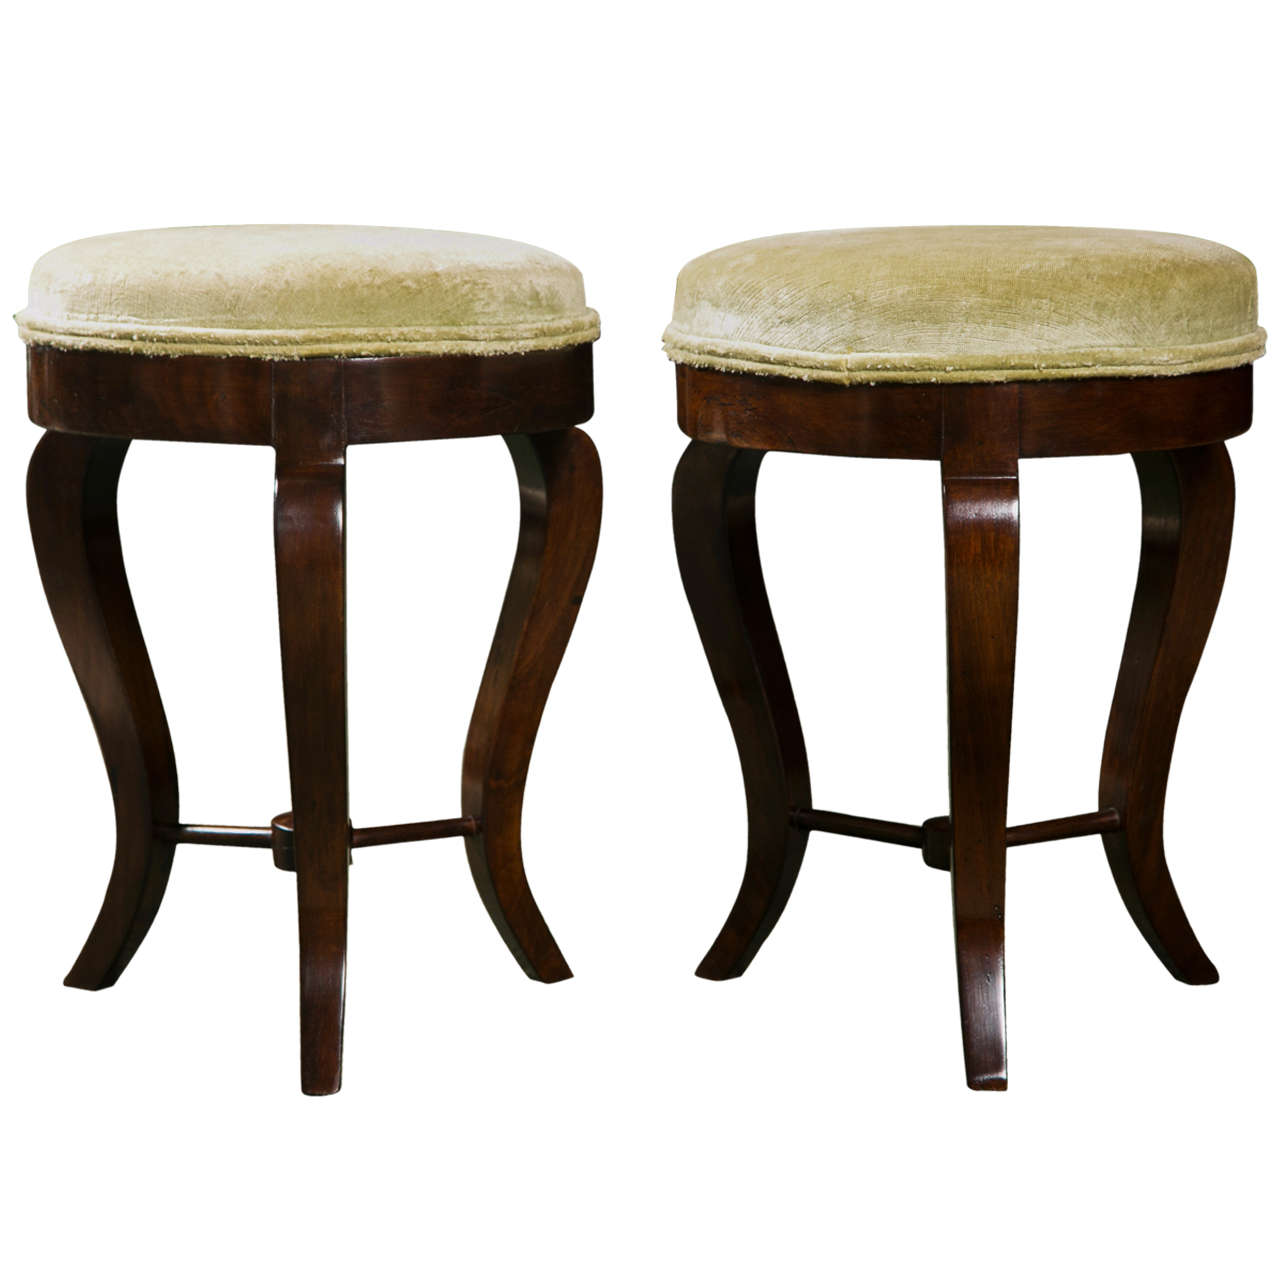 Pair of Italian Neoclassical Stools